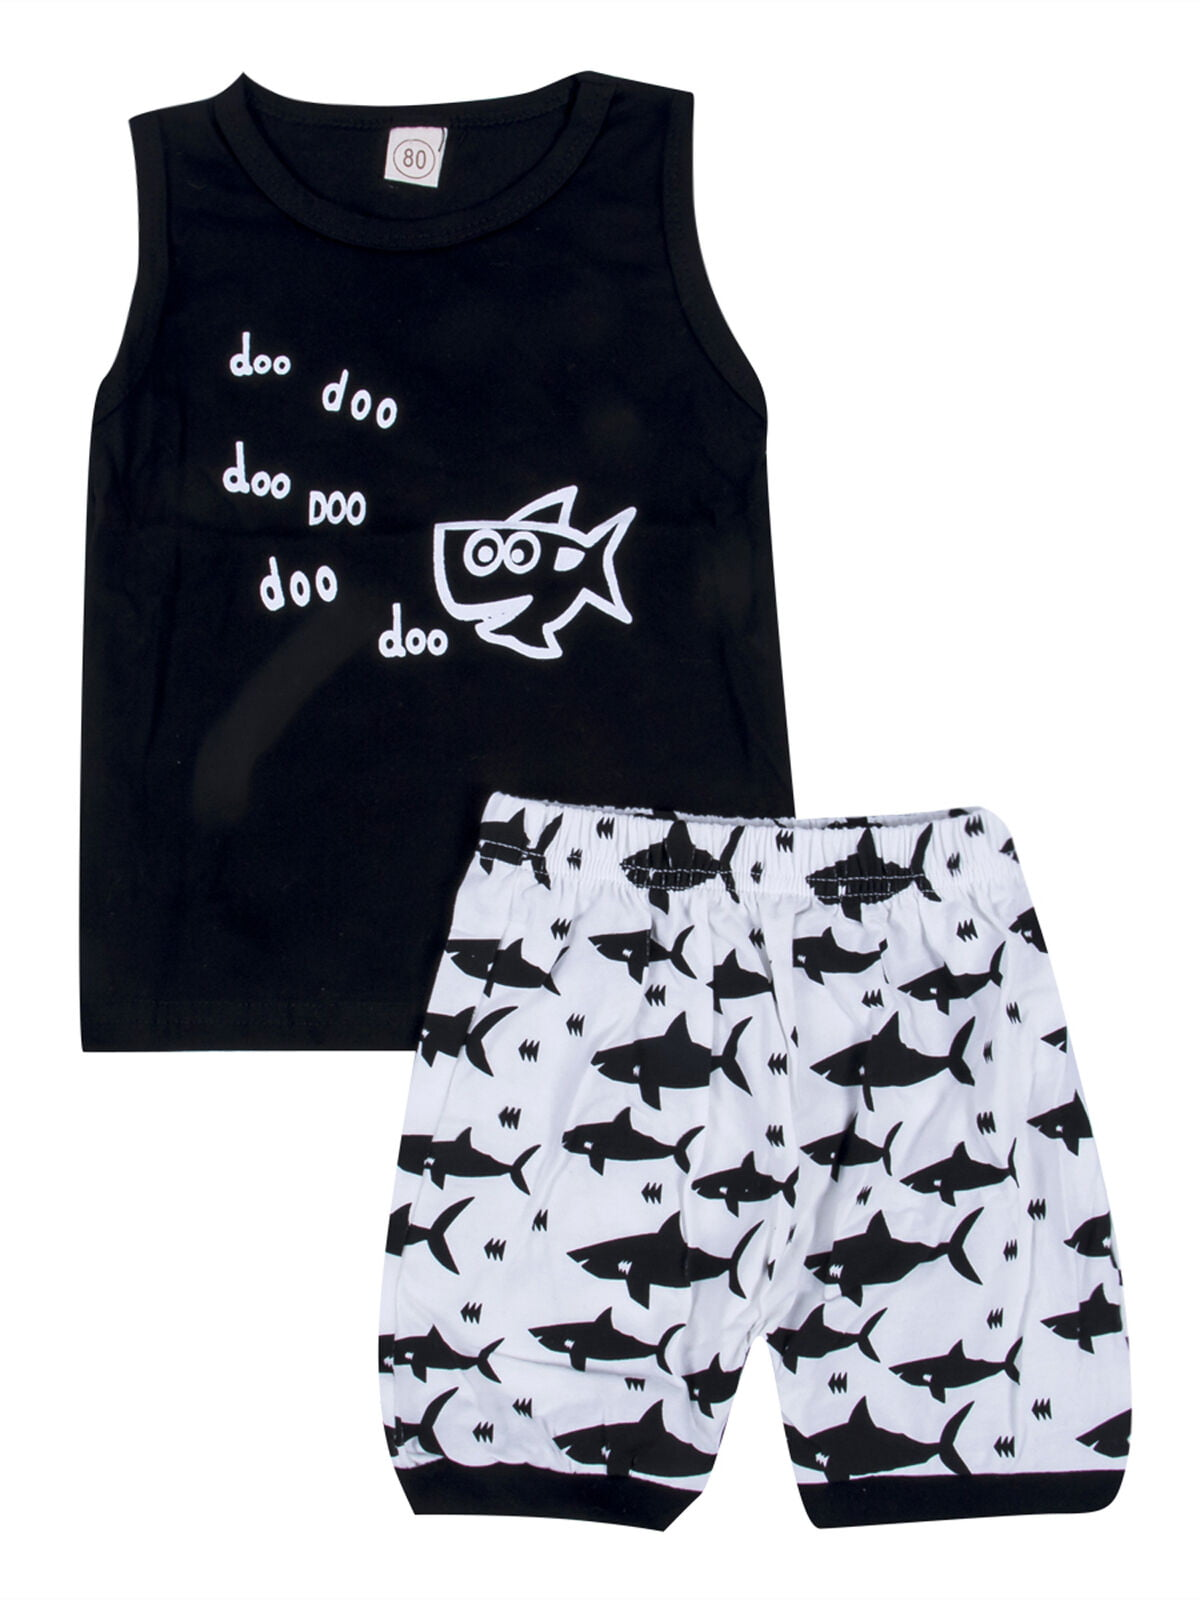 Short Pants Outfits Set Baby Boy Girl Clothes Summer Shark Doo Doo Print Cotton Short Sleeve T-Shirt Tops